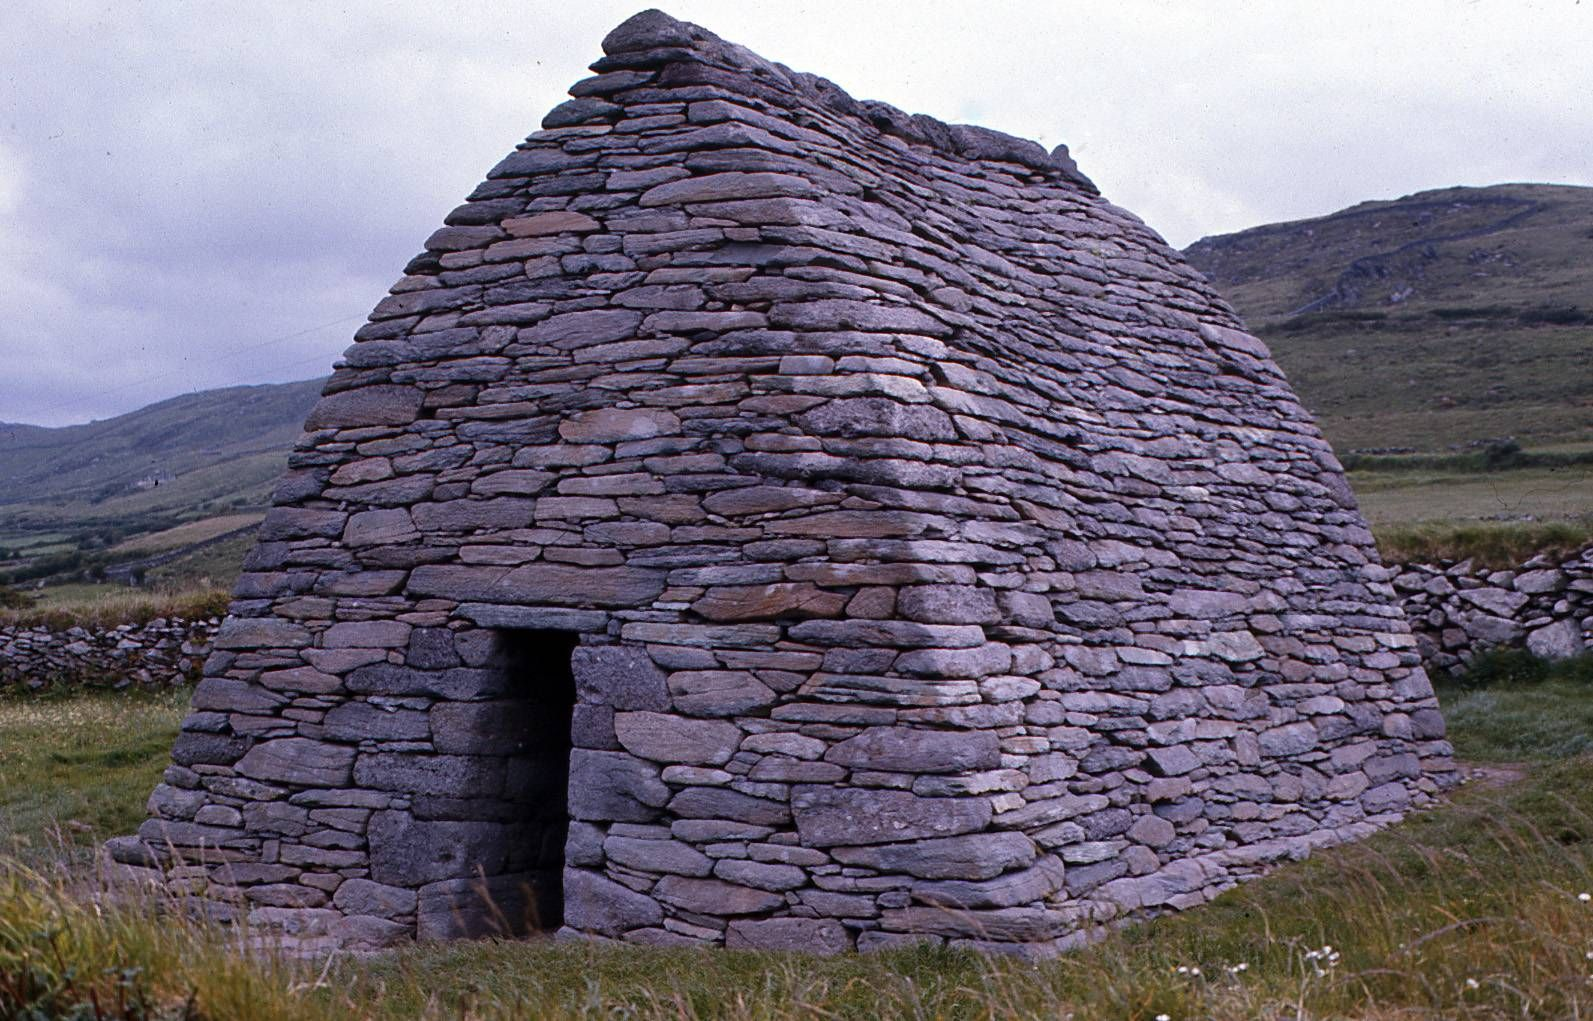 old stone structures images | Old stone house in Ireland ...